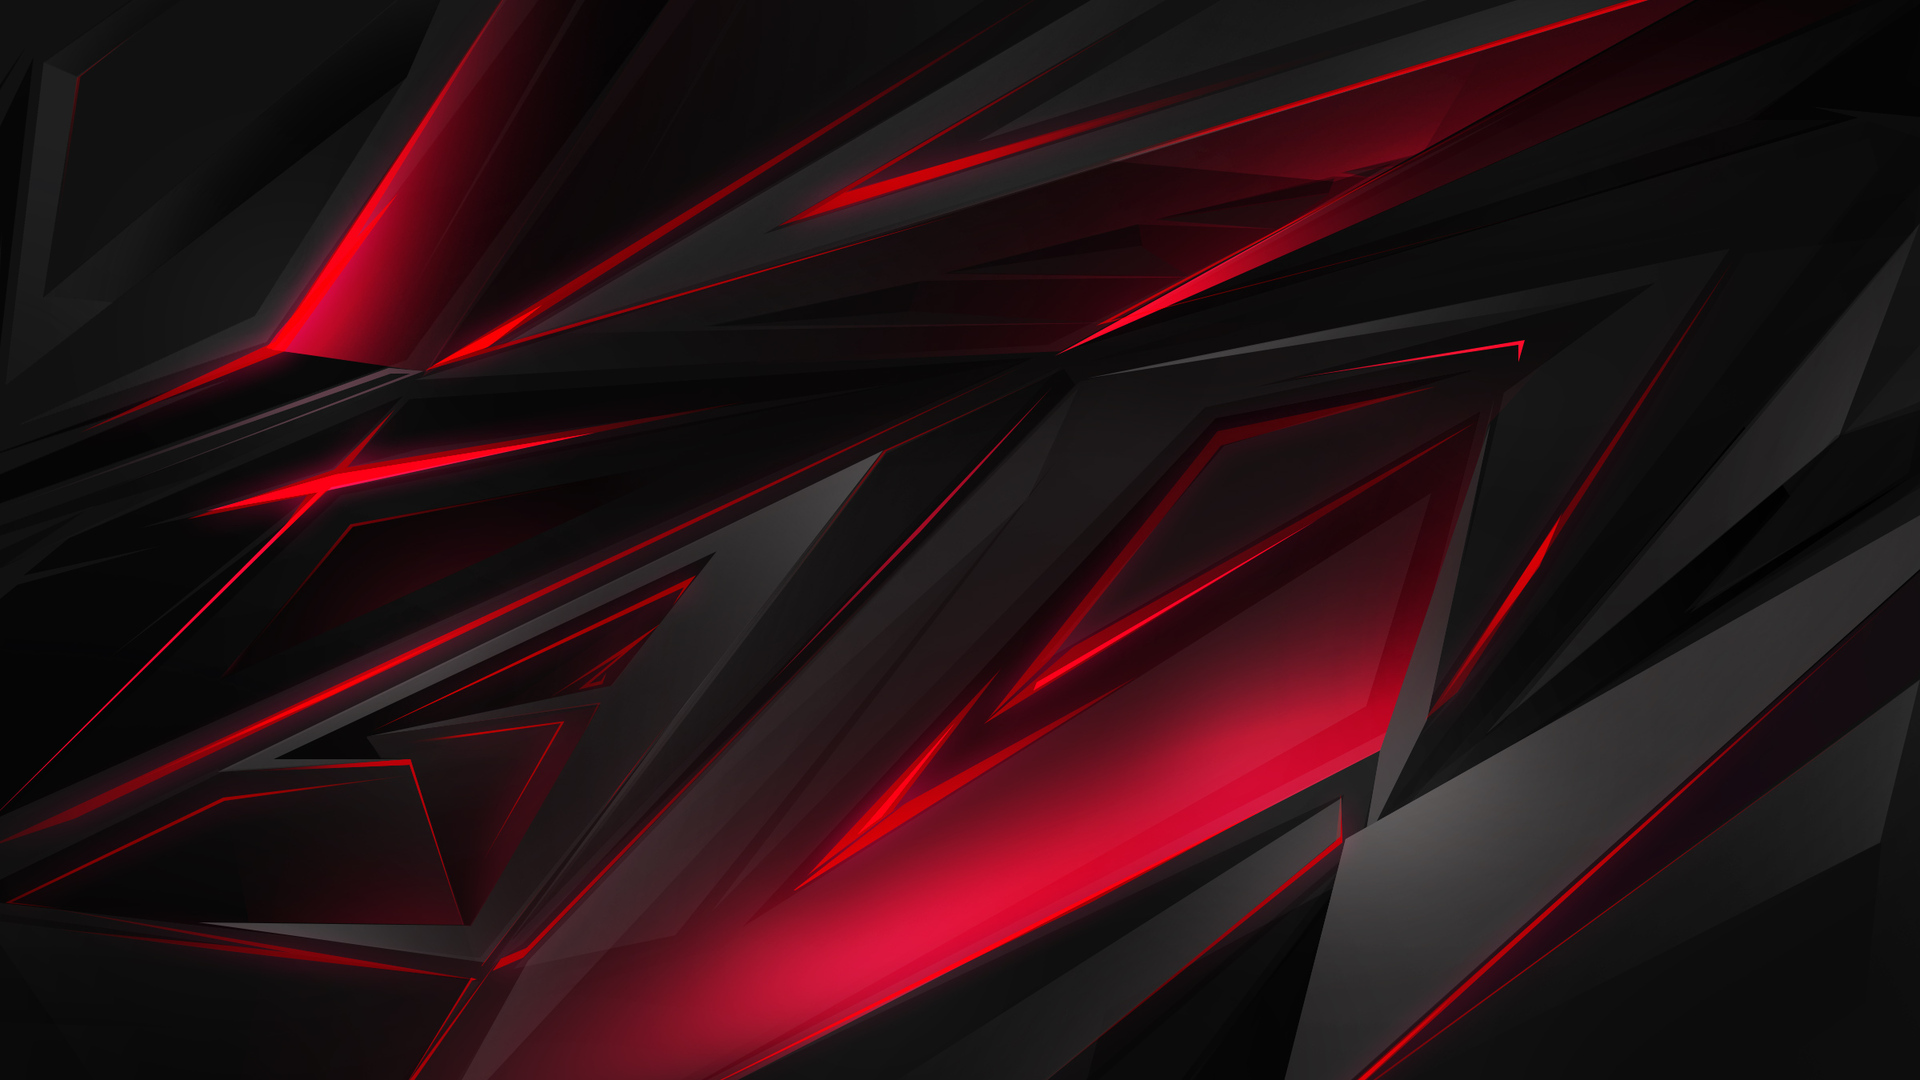 1920x1080 Polygonal Abstract Red Dark Background Laptop Full Hd 1080p Hd 4k Wallpapers Images Backgrounds Photos And Pictures